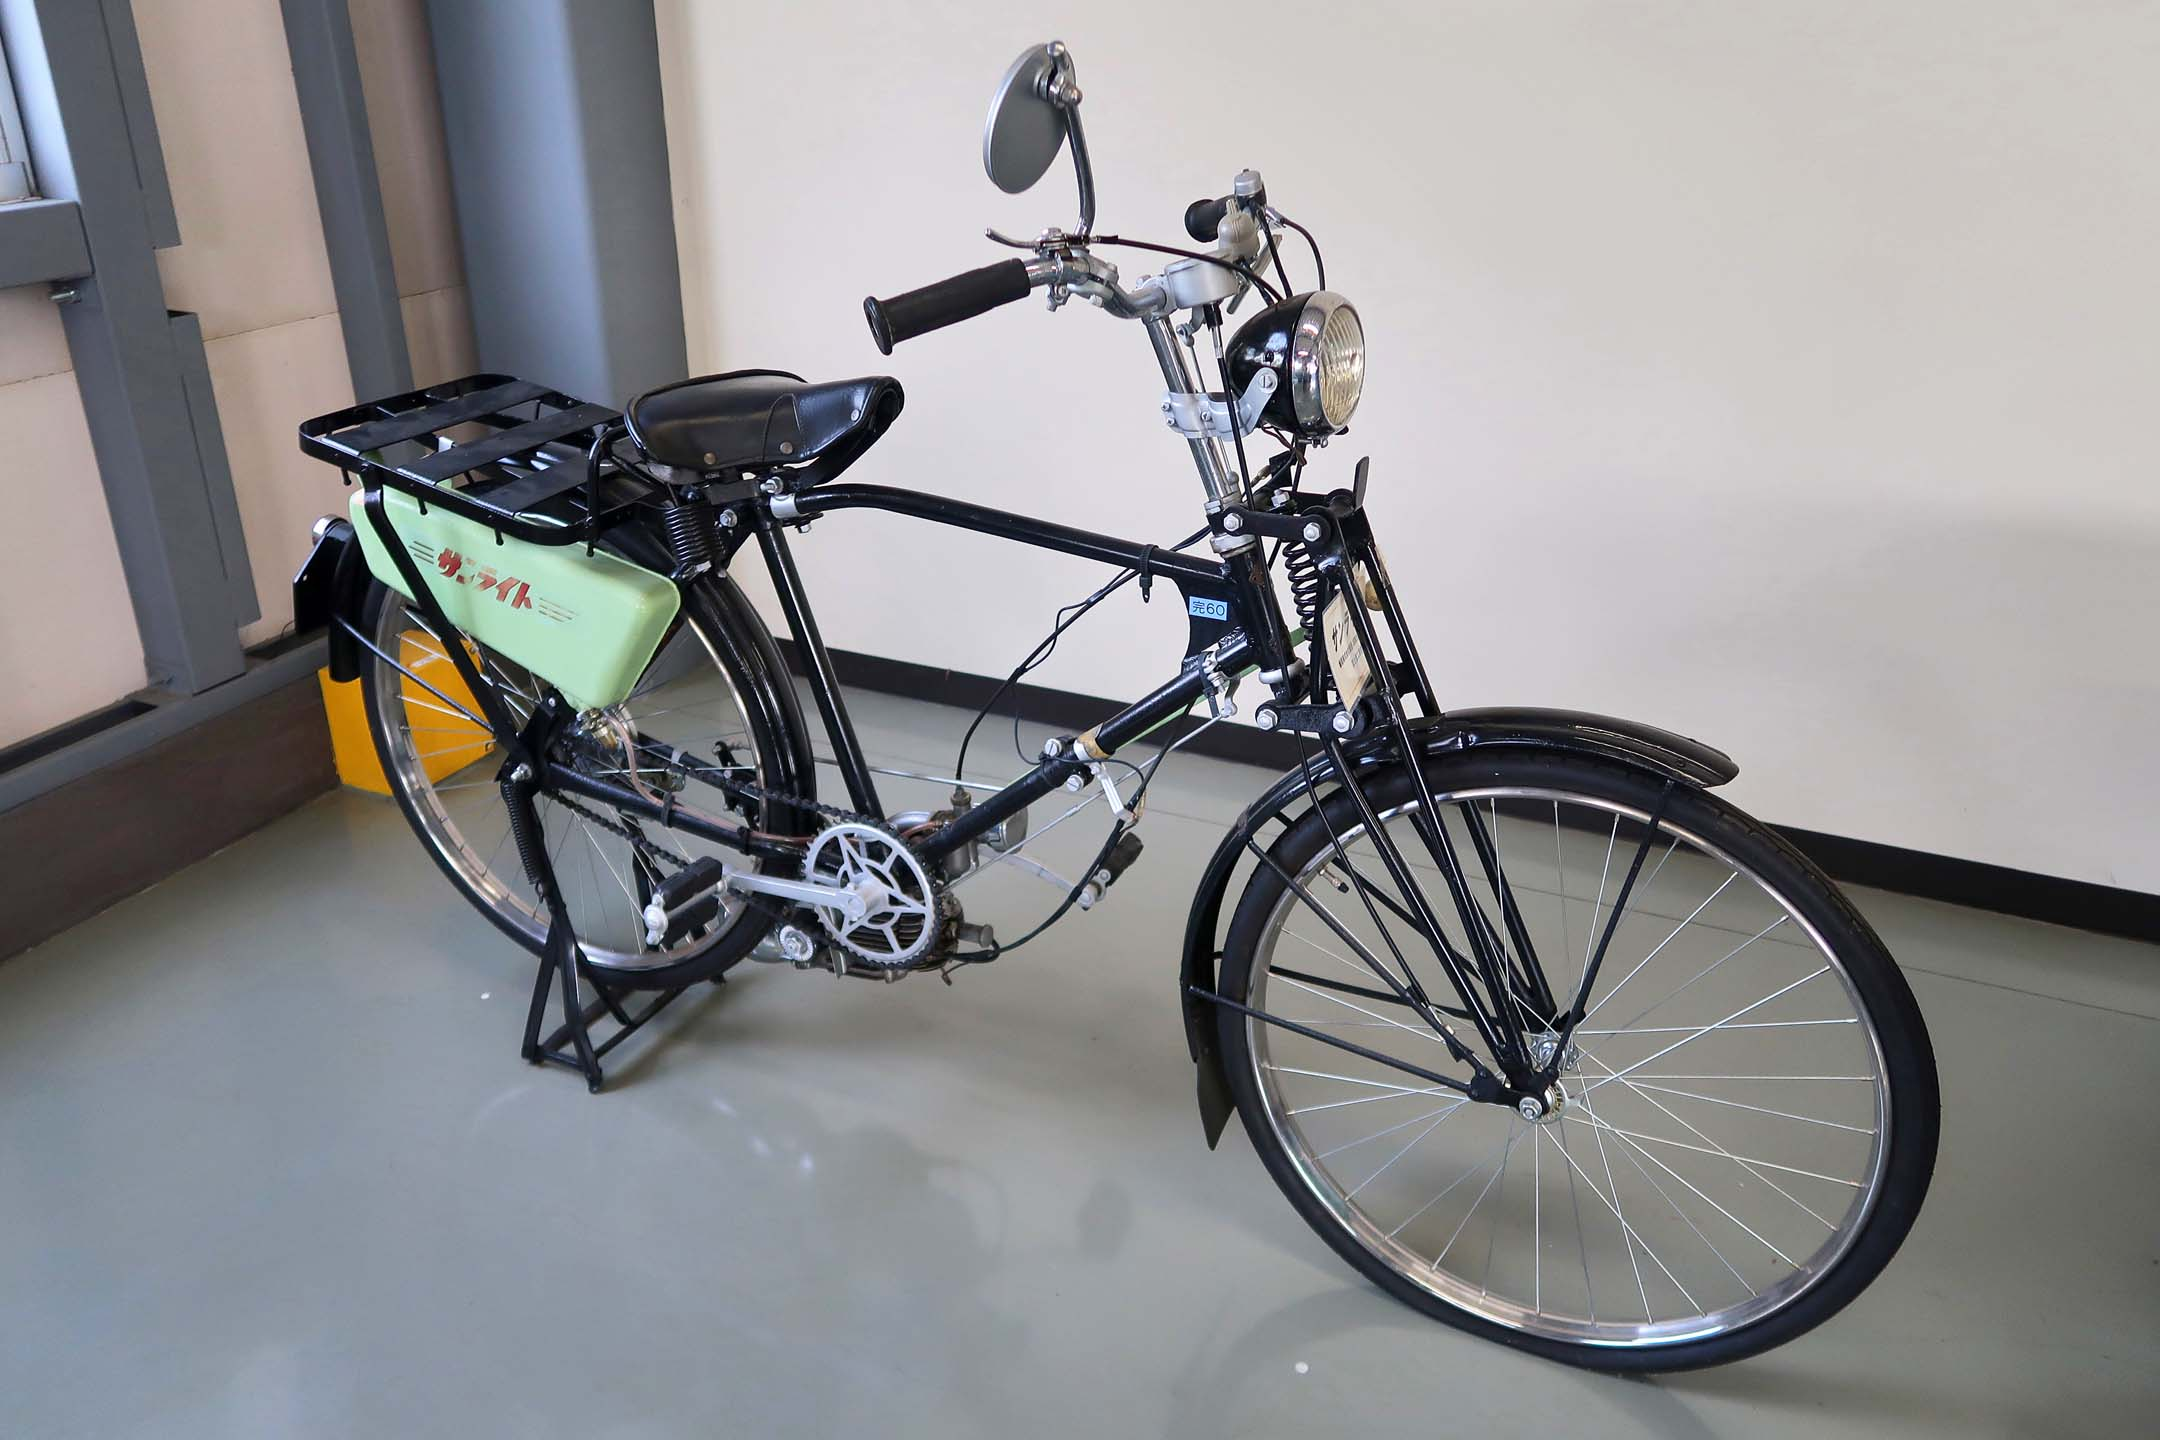 This motorized bicycle was manufactured by one of the firms which later formed part of Fuji Heavy Industries